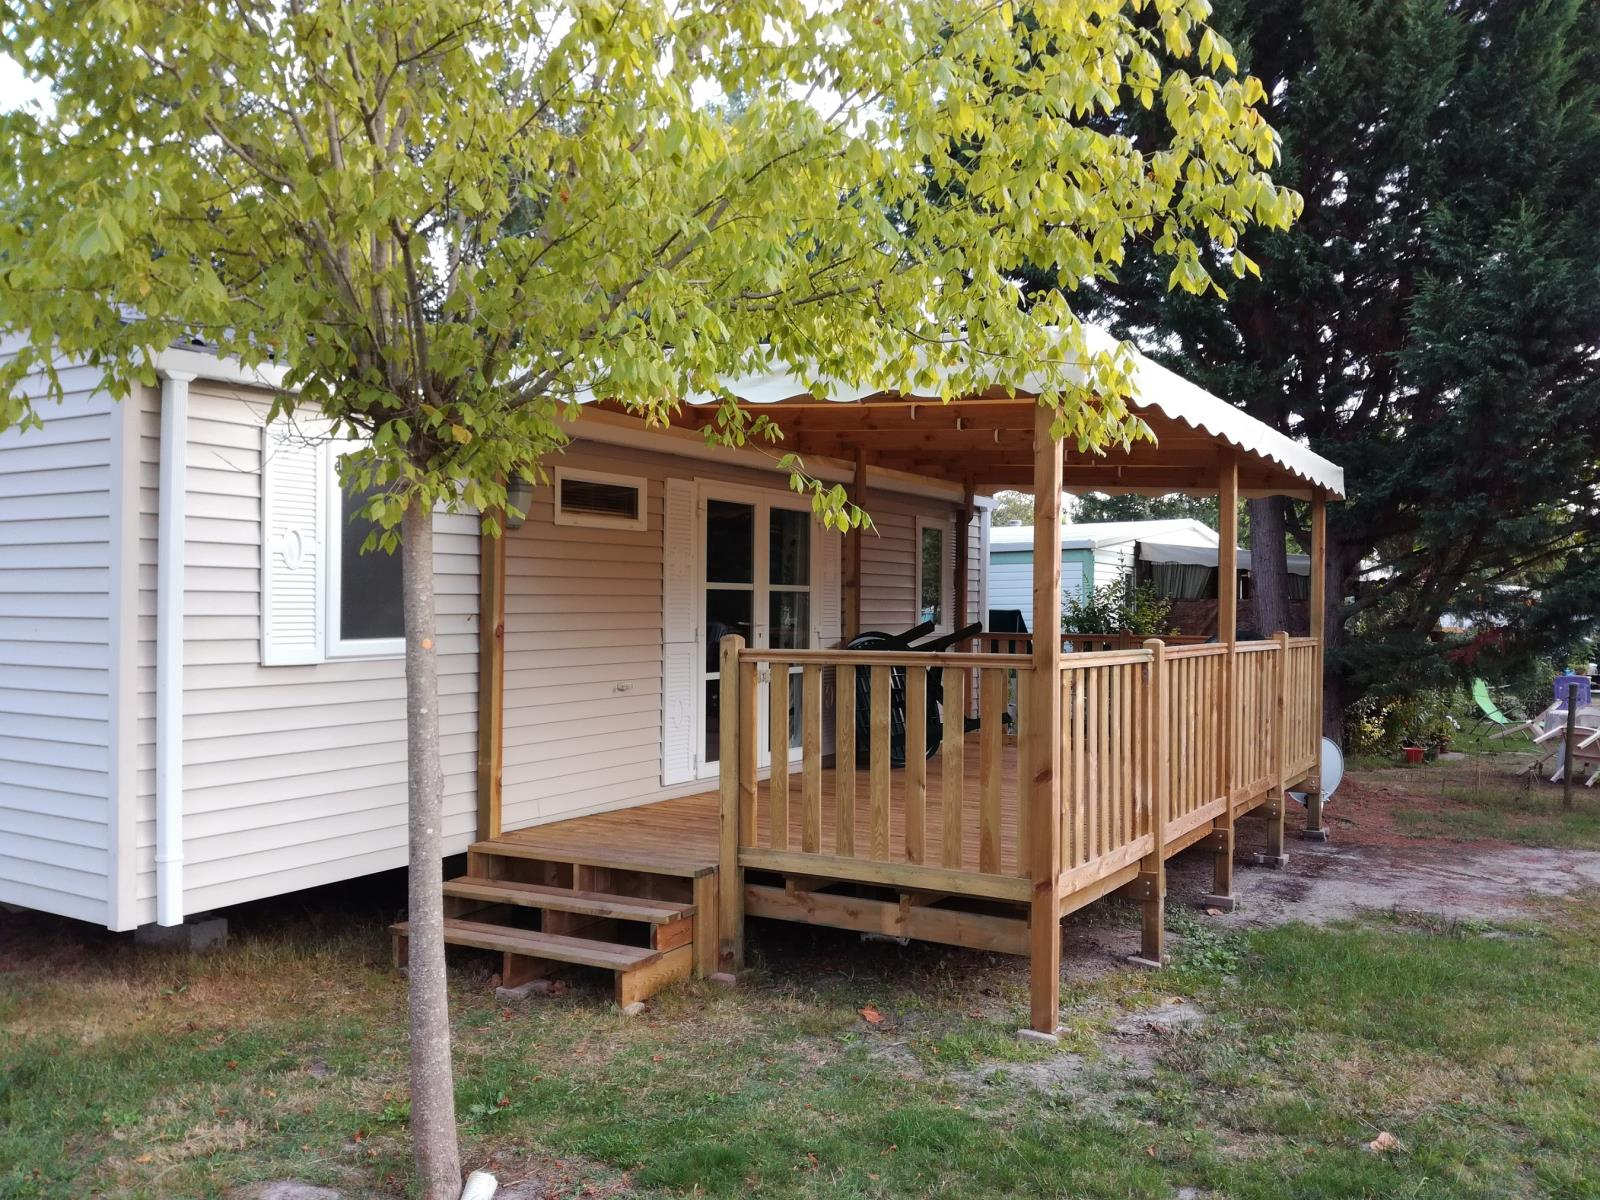 Location - Mobilhome 2 Chambres Grand Confort - 34M² * - Camping L'Arbre d'Or